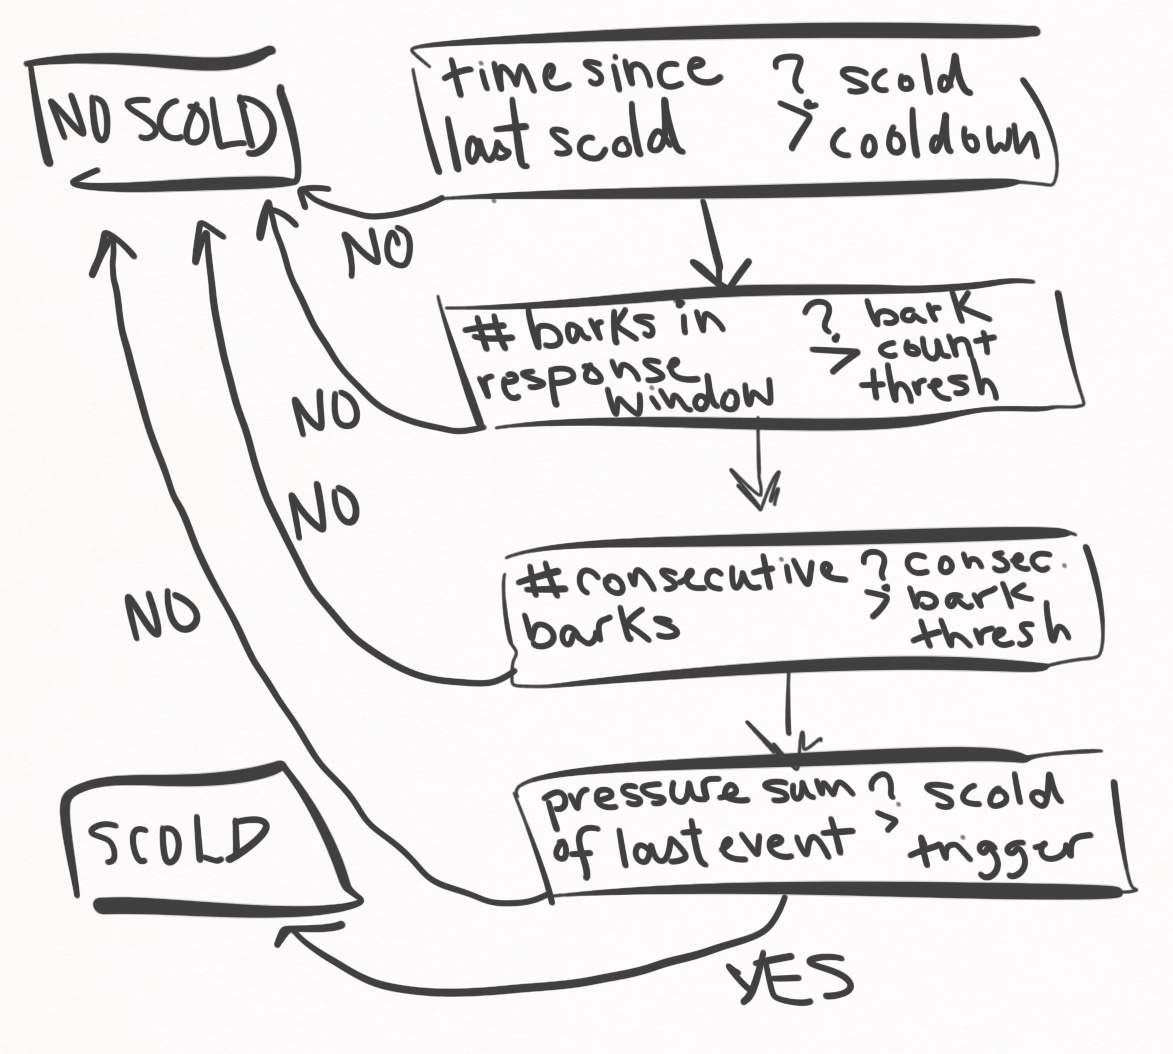 scold_workflow_1